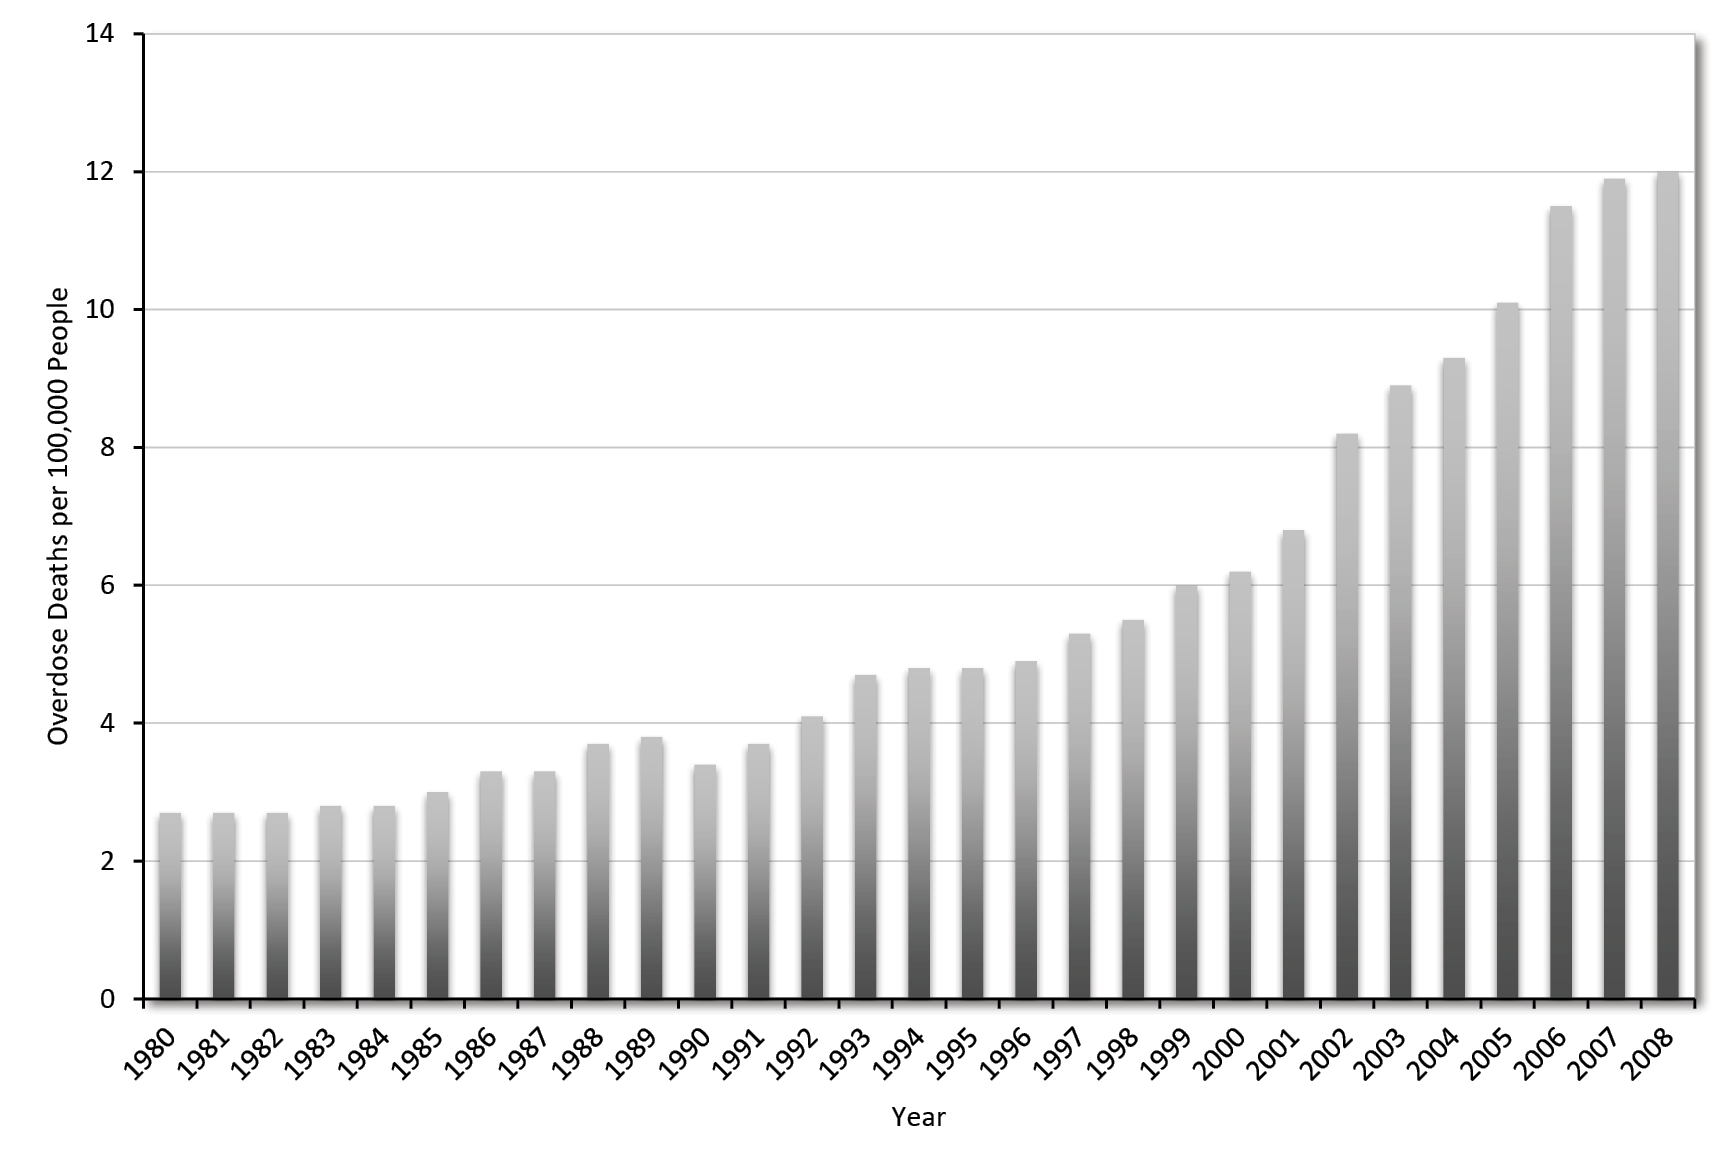 an analysis of the wonderful war on drugs in the united states Marijuana prohibition in the united states: history and analysis of a failed  and was instrumental in affecting pubic attitudes which lead to the 1980s war on drugs.